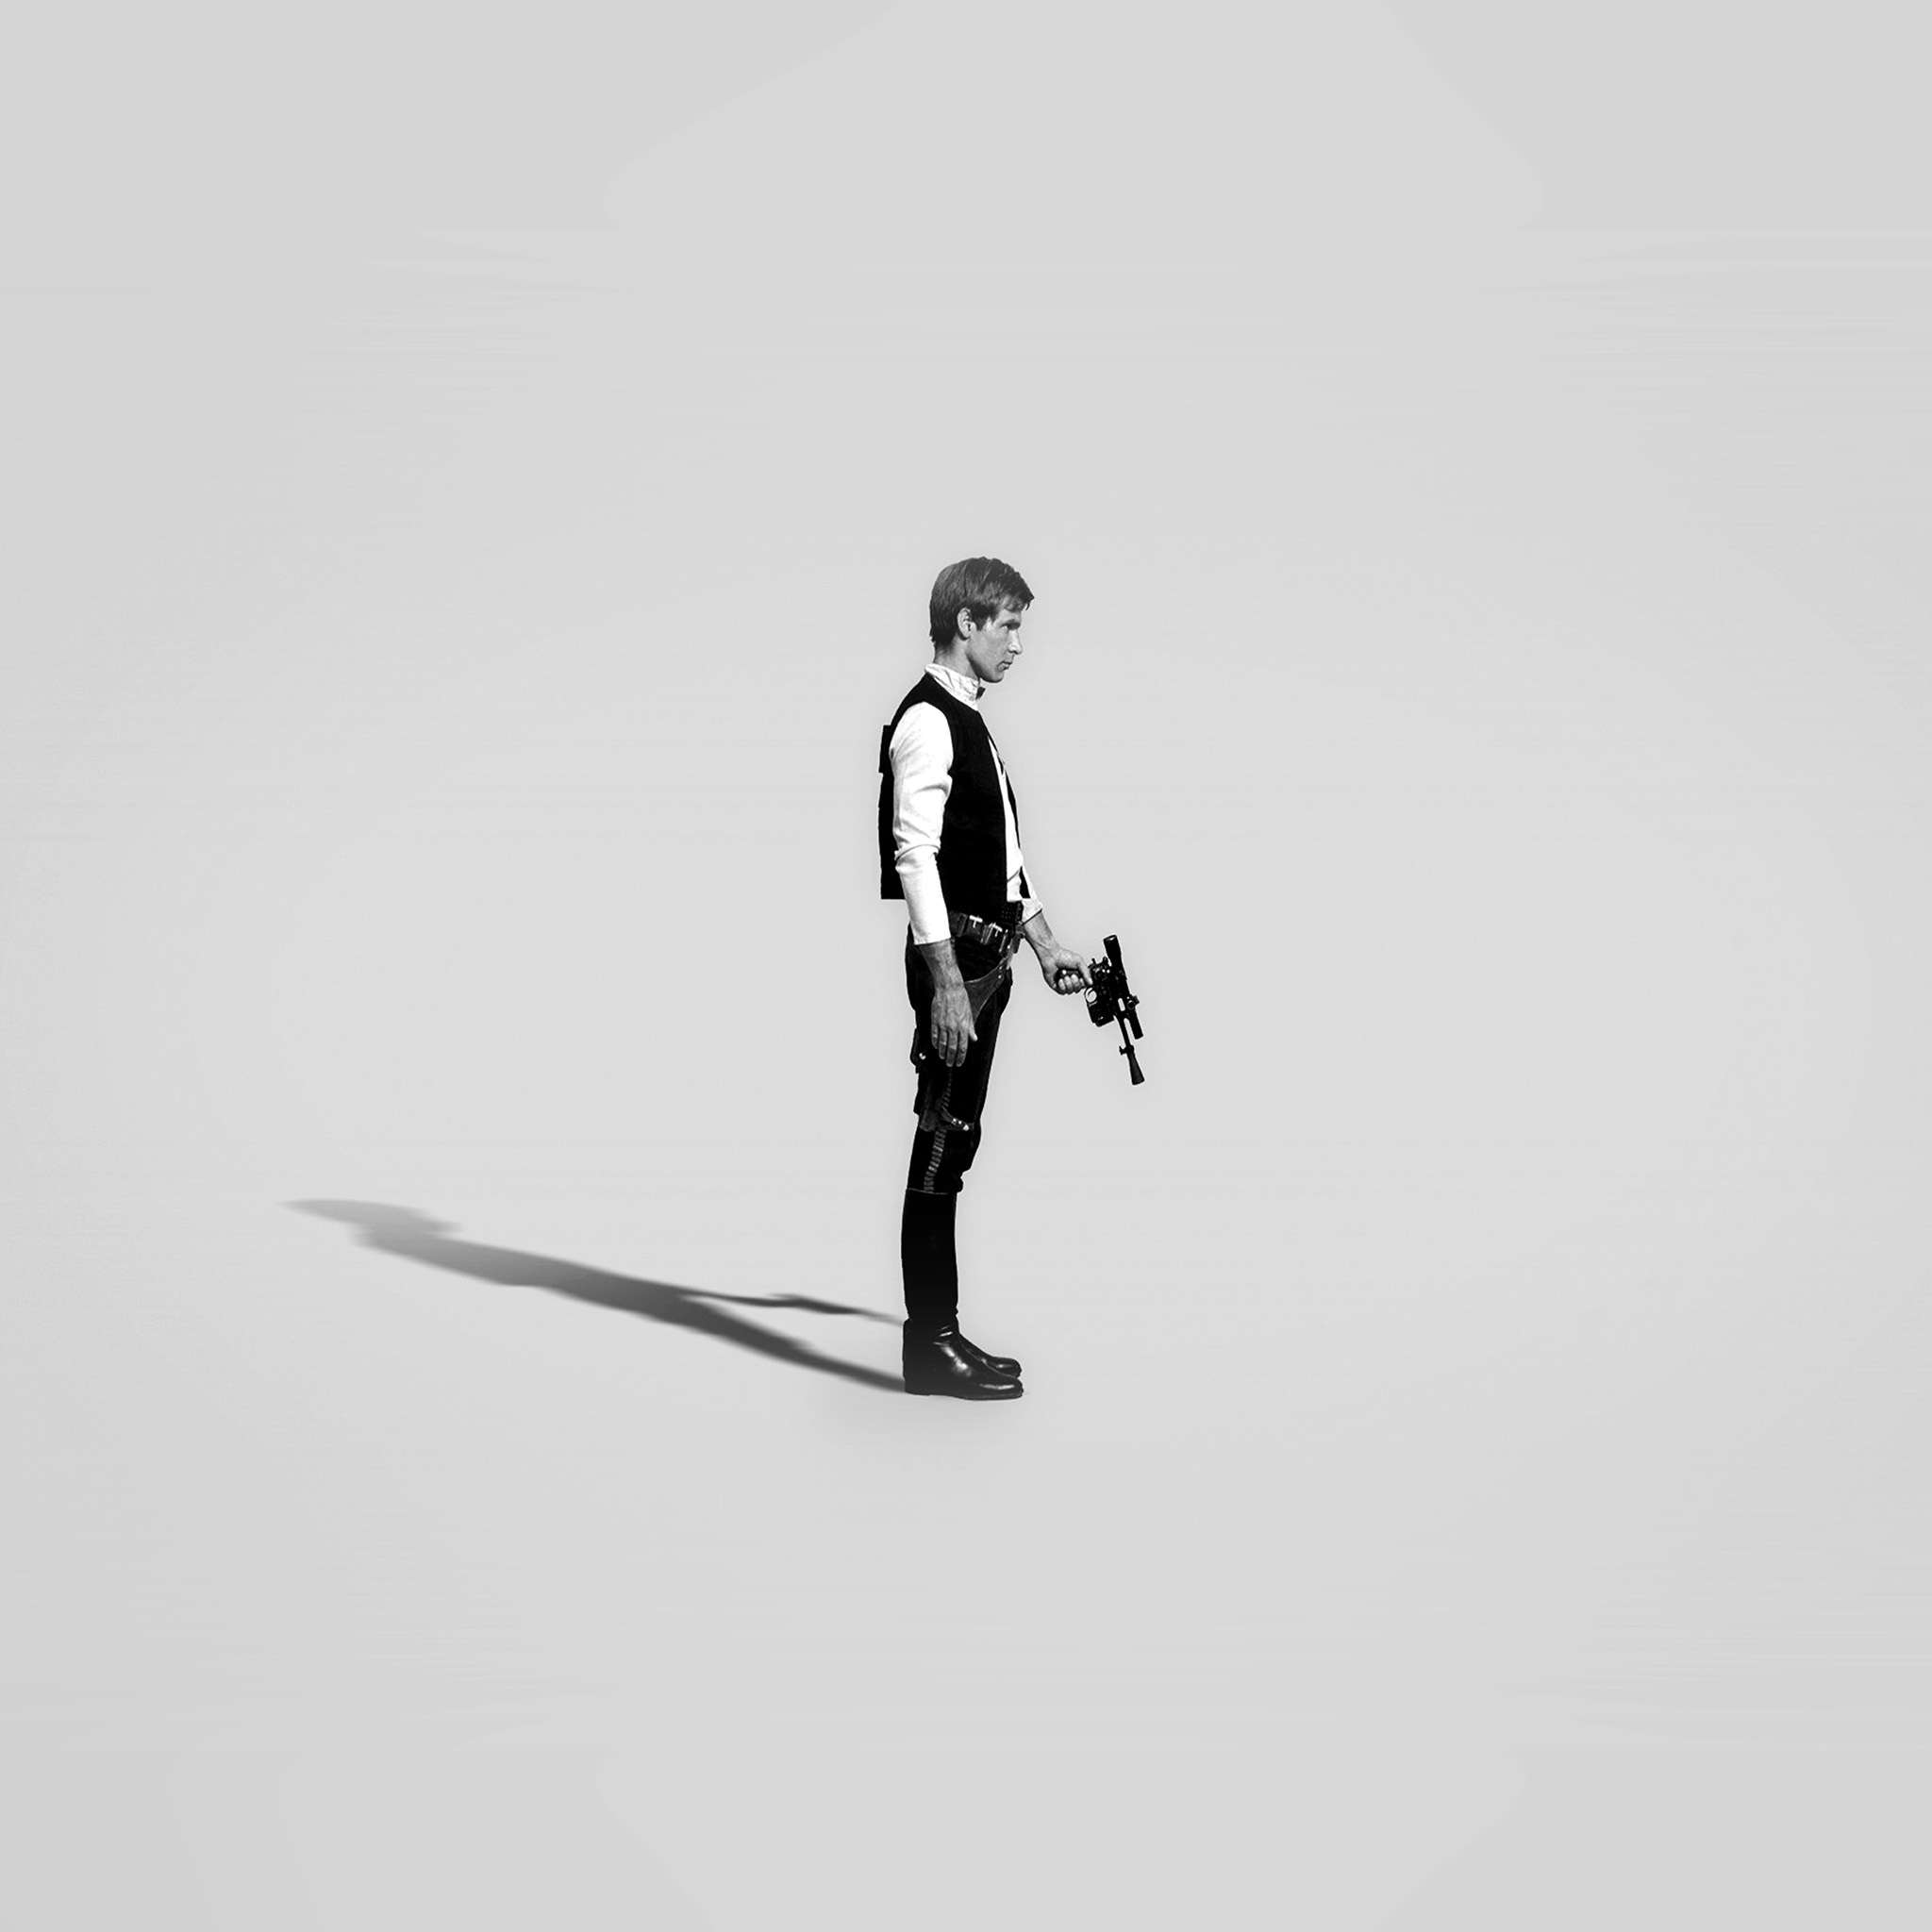 Wallpaper Iphone Minimalist: Hh19-han-solo-starwars-hero-art-minimal-bw